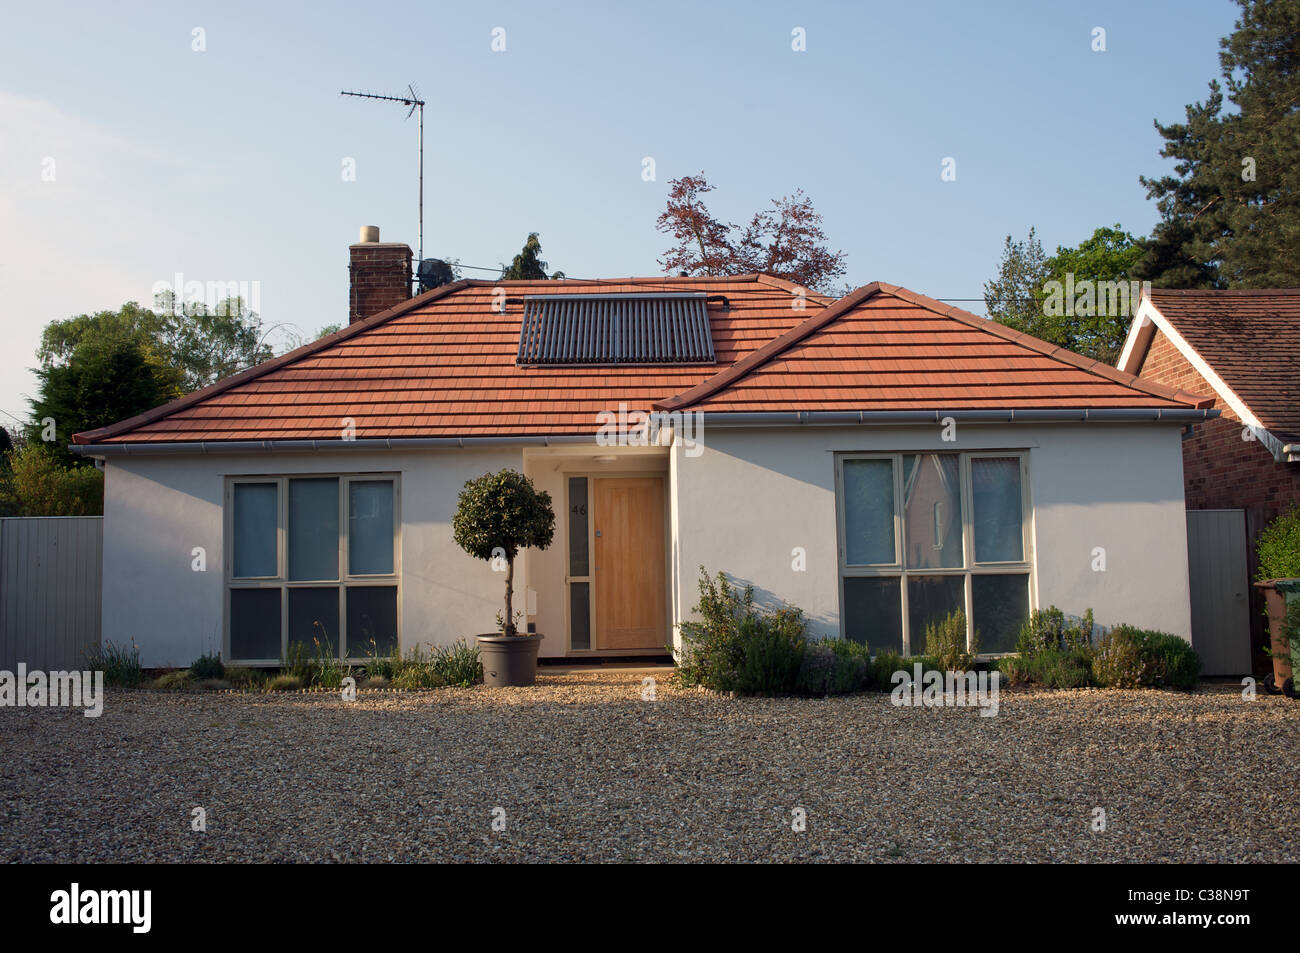 Bungalow fitted with evacuated solar energy tubes for hot water system Stock Photo